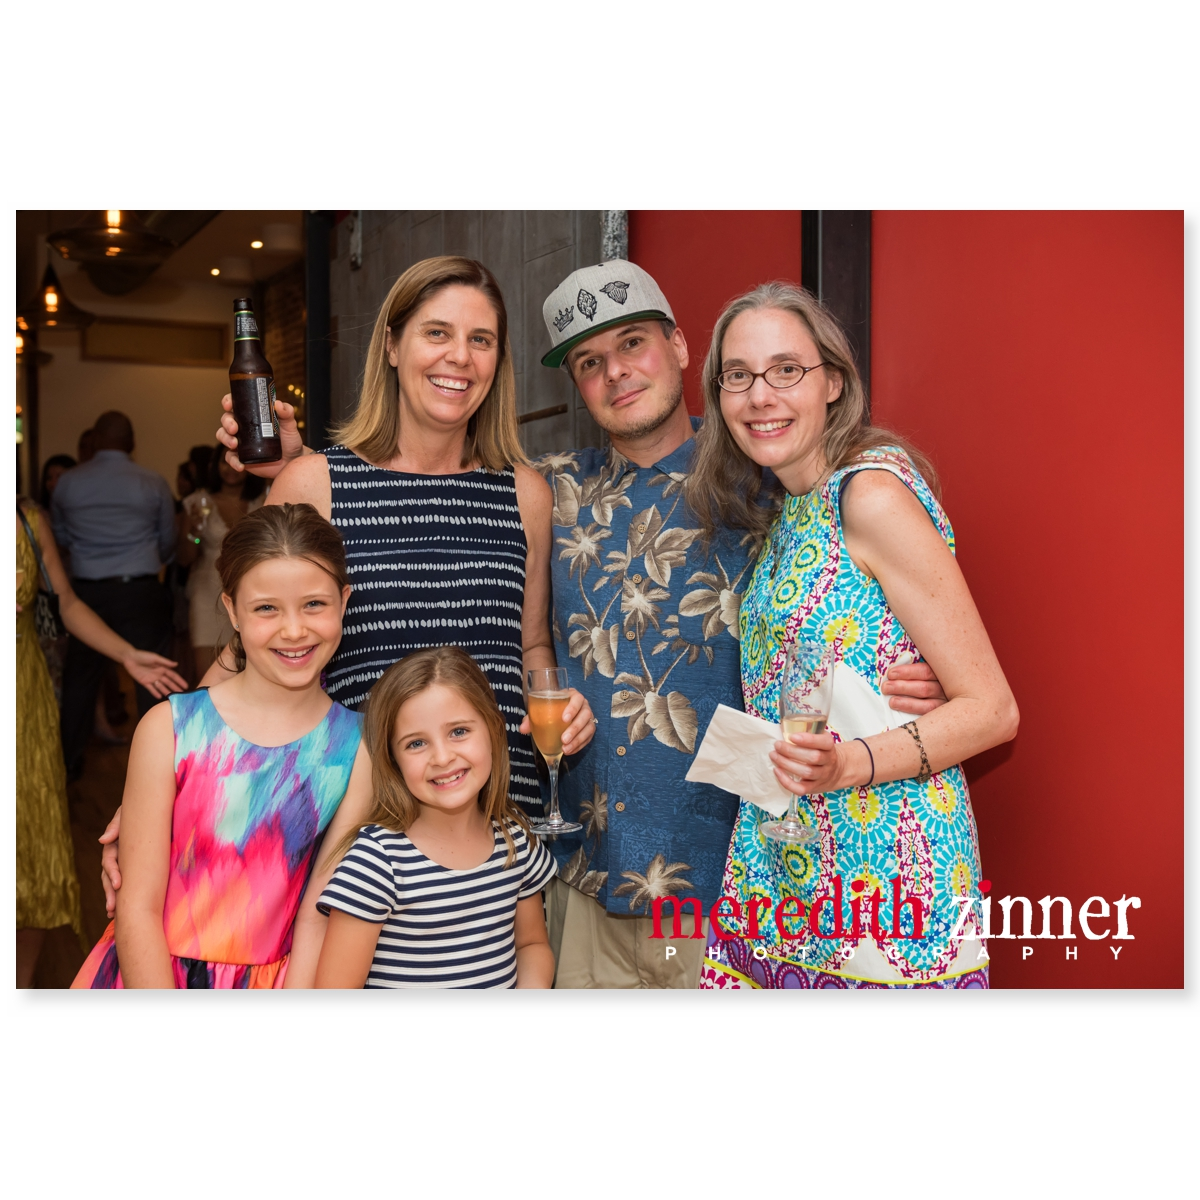 Meredith_Zinner_Photography_StilesCelebration_0116